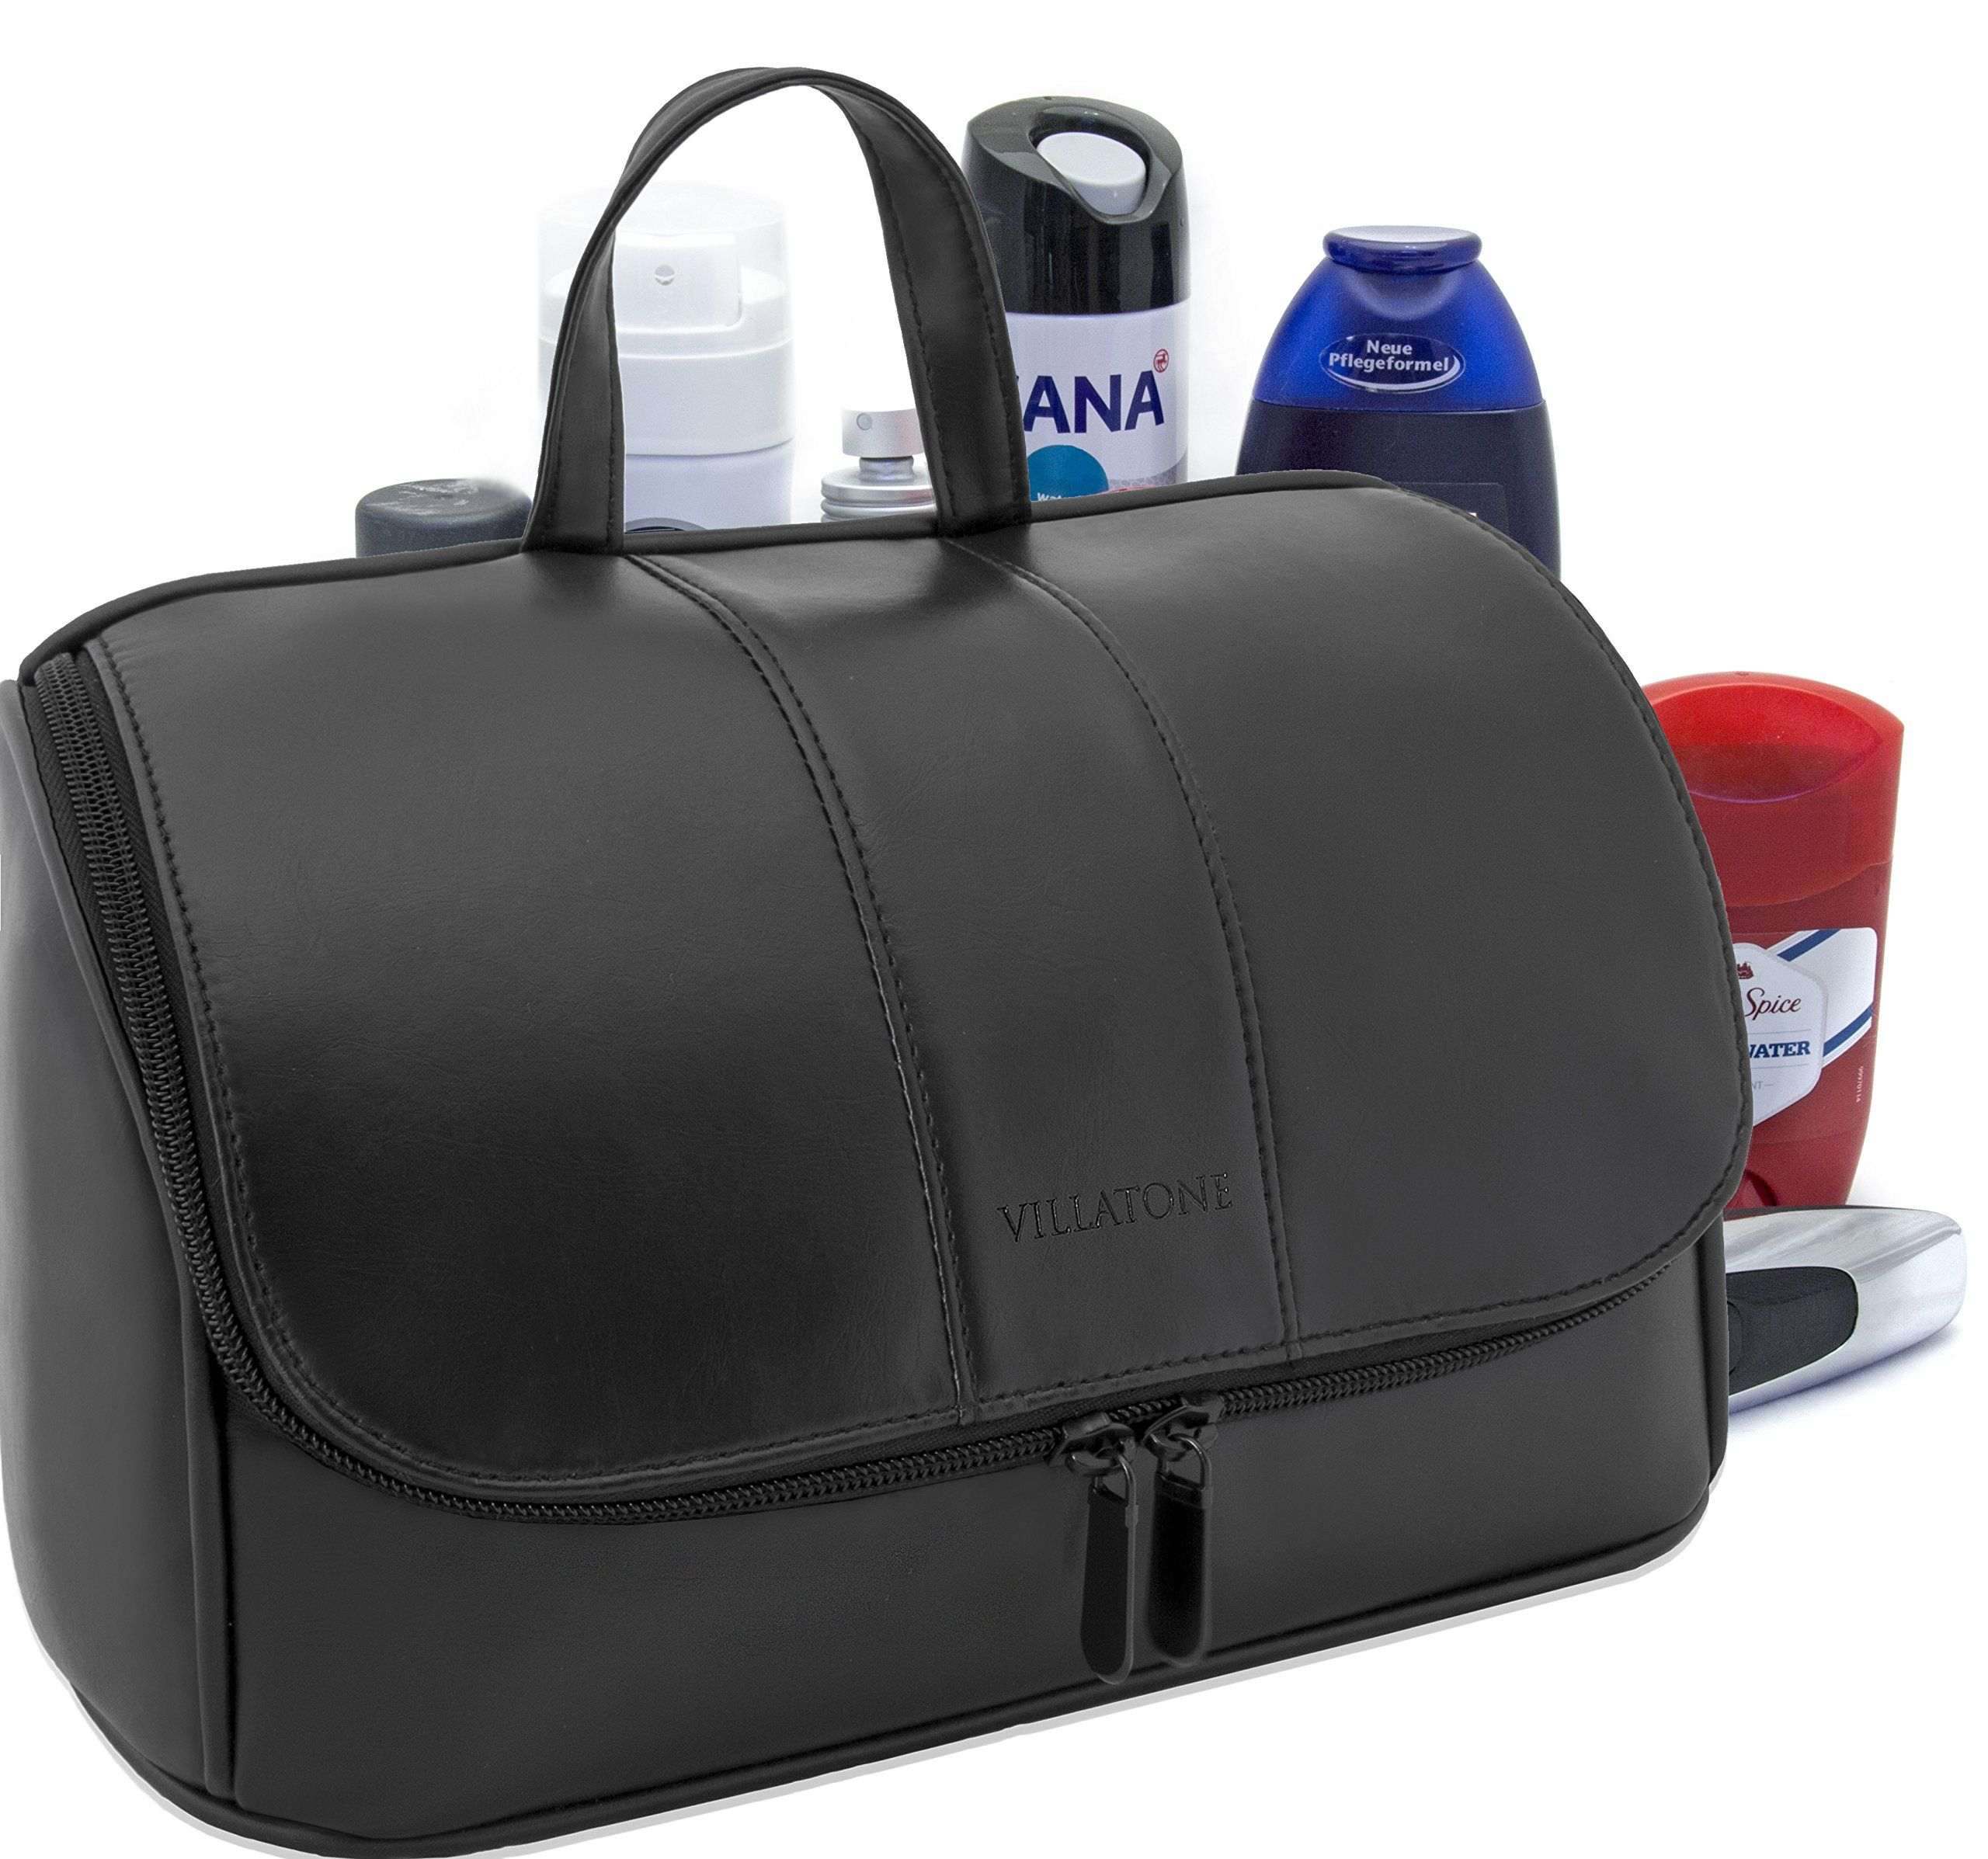 VILLATONE Black Leather Toiletry Bag for Men - Large Hanging Travel  Organizer b3d18765cc1b4